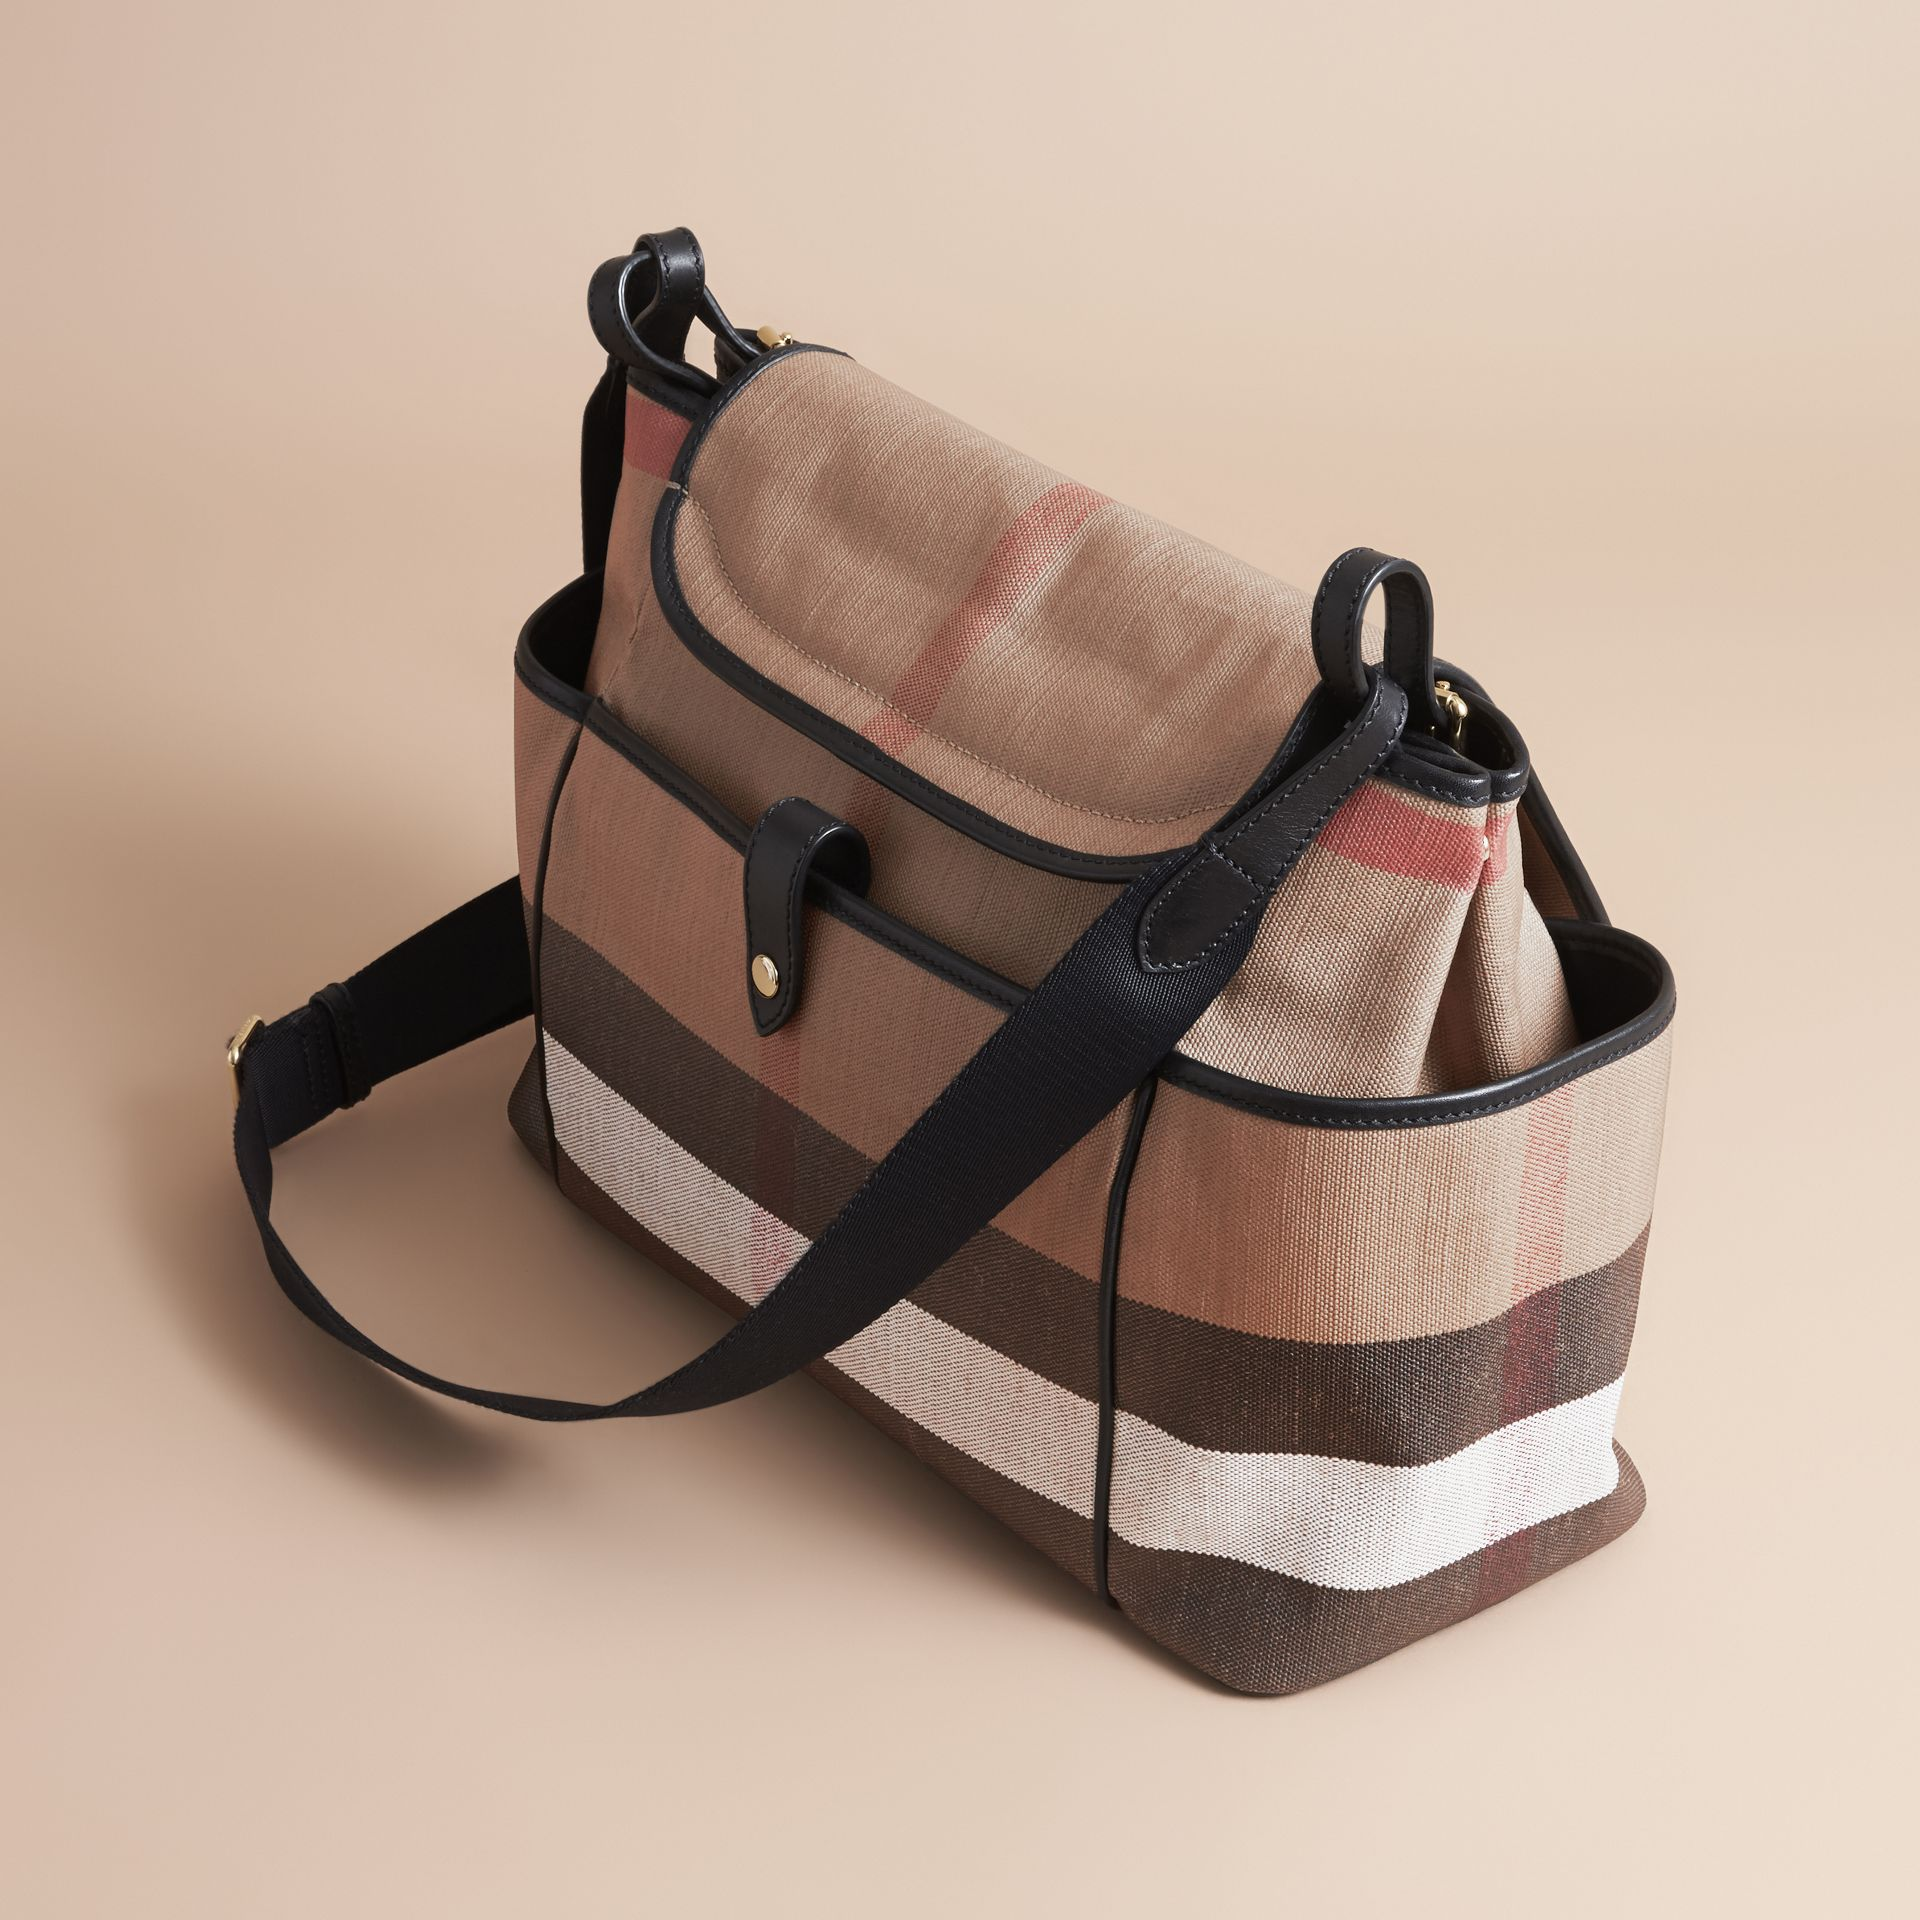 Canvas Check and Leather Baby Changing Shoulder Bag in Black - Children | Burberry United Kingdom - gallery image 2